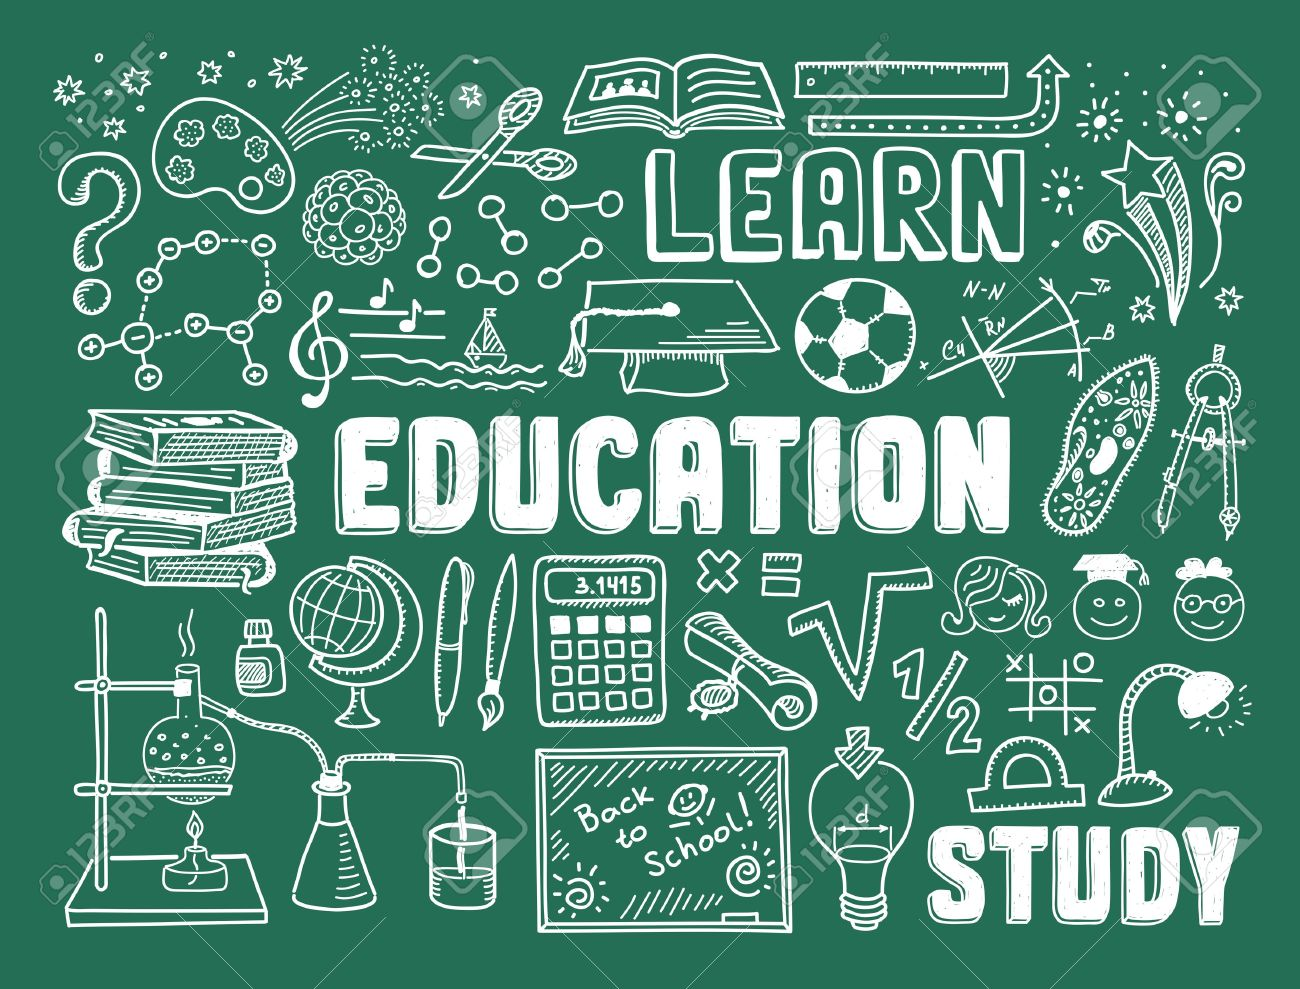 Hand drawn vector illustration set of education and learning doodles with school objects and items Isolated on green background - 21370167